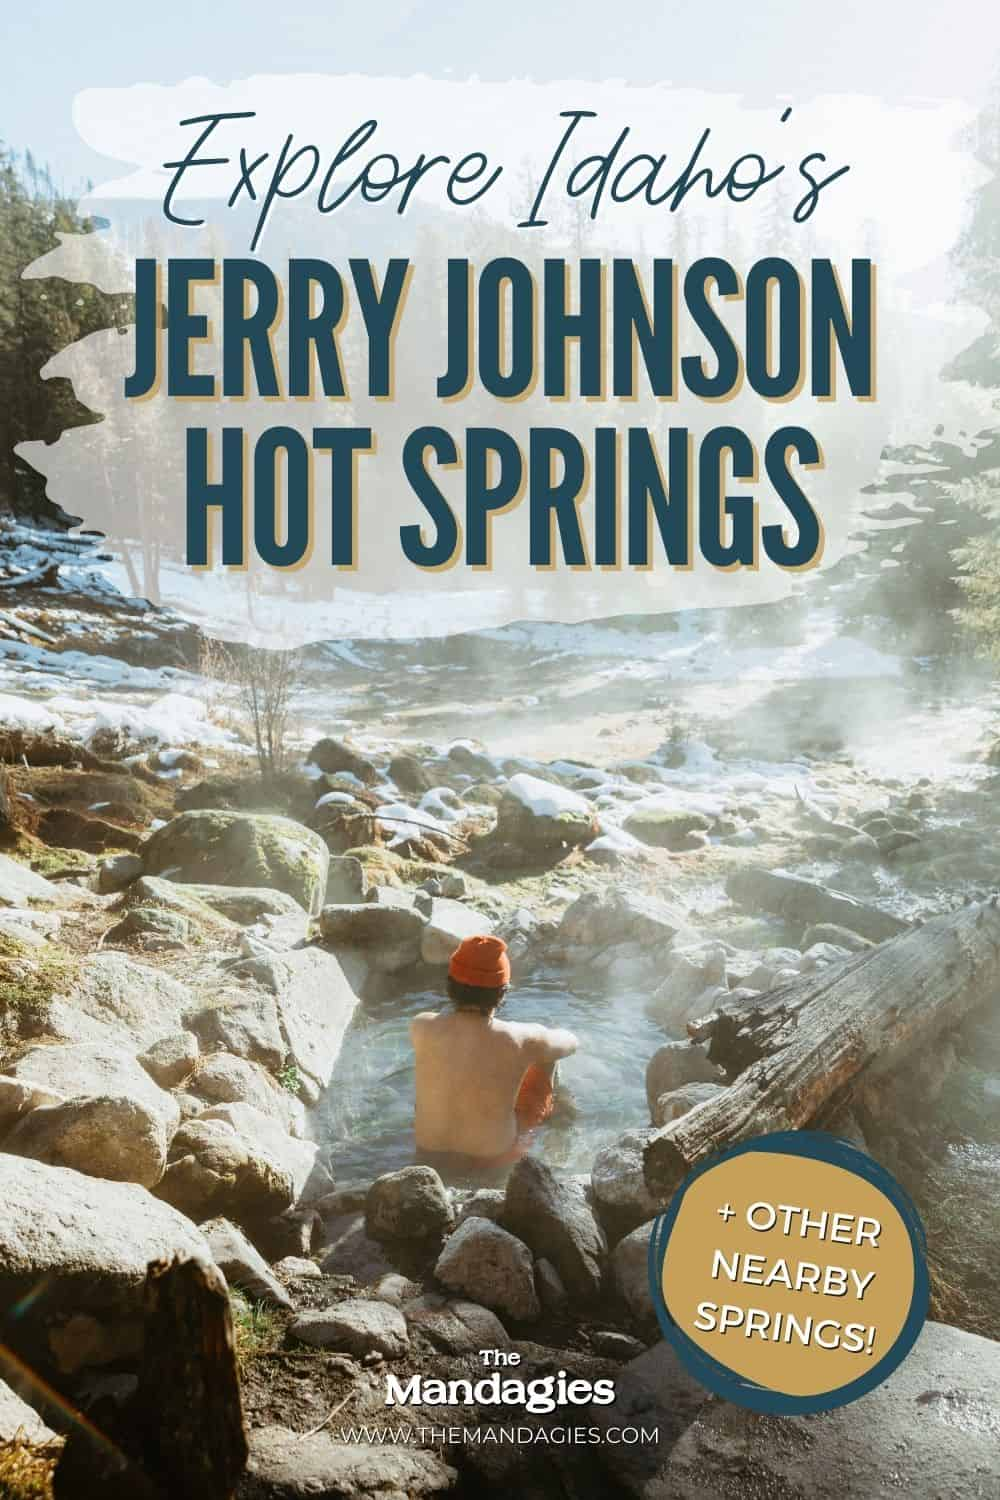 Jerry Johnson Hot Springs in Central Idaho is one of the coolest hot springs in Idaho! We're sharing how to get to the Lolo Pass area, what to pack for your hot springs day hike, and nearby hot springs near Missoula and North Idaho. Save this post for your next beautiful Idaho road trip! #westcoast #roadtrip #americanroadtrip #idaho #PNW #hotsprings #idahohotsprings #mountains #lolopass #missoula